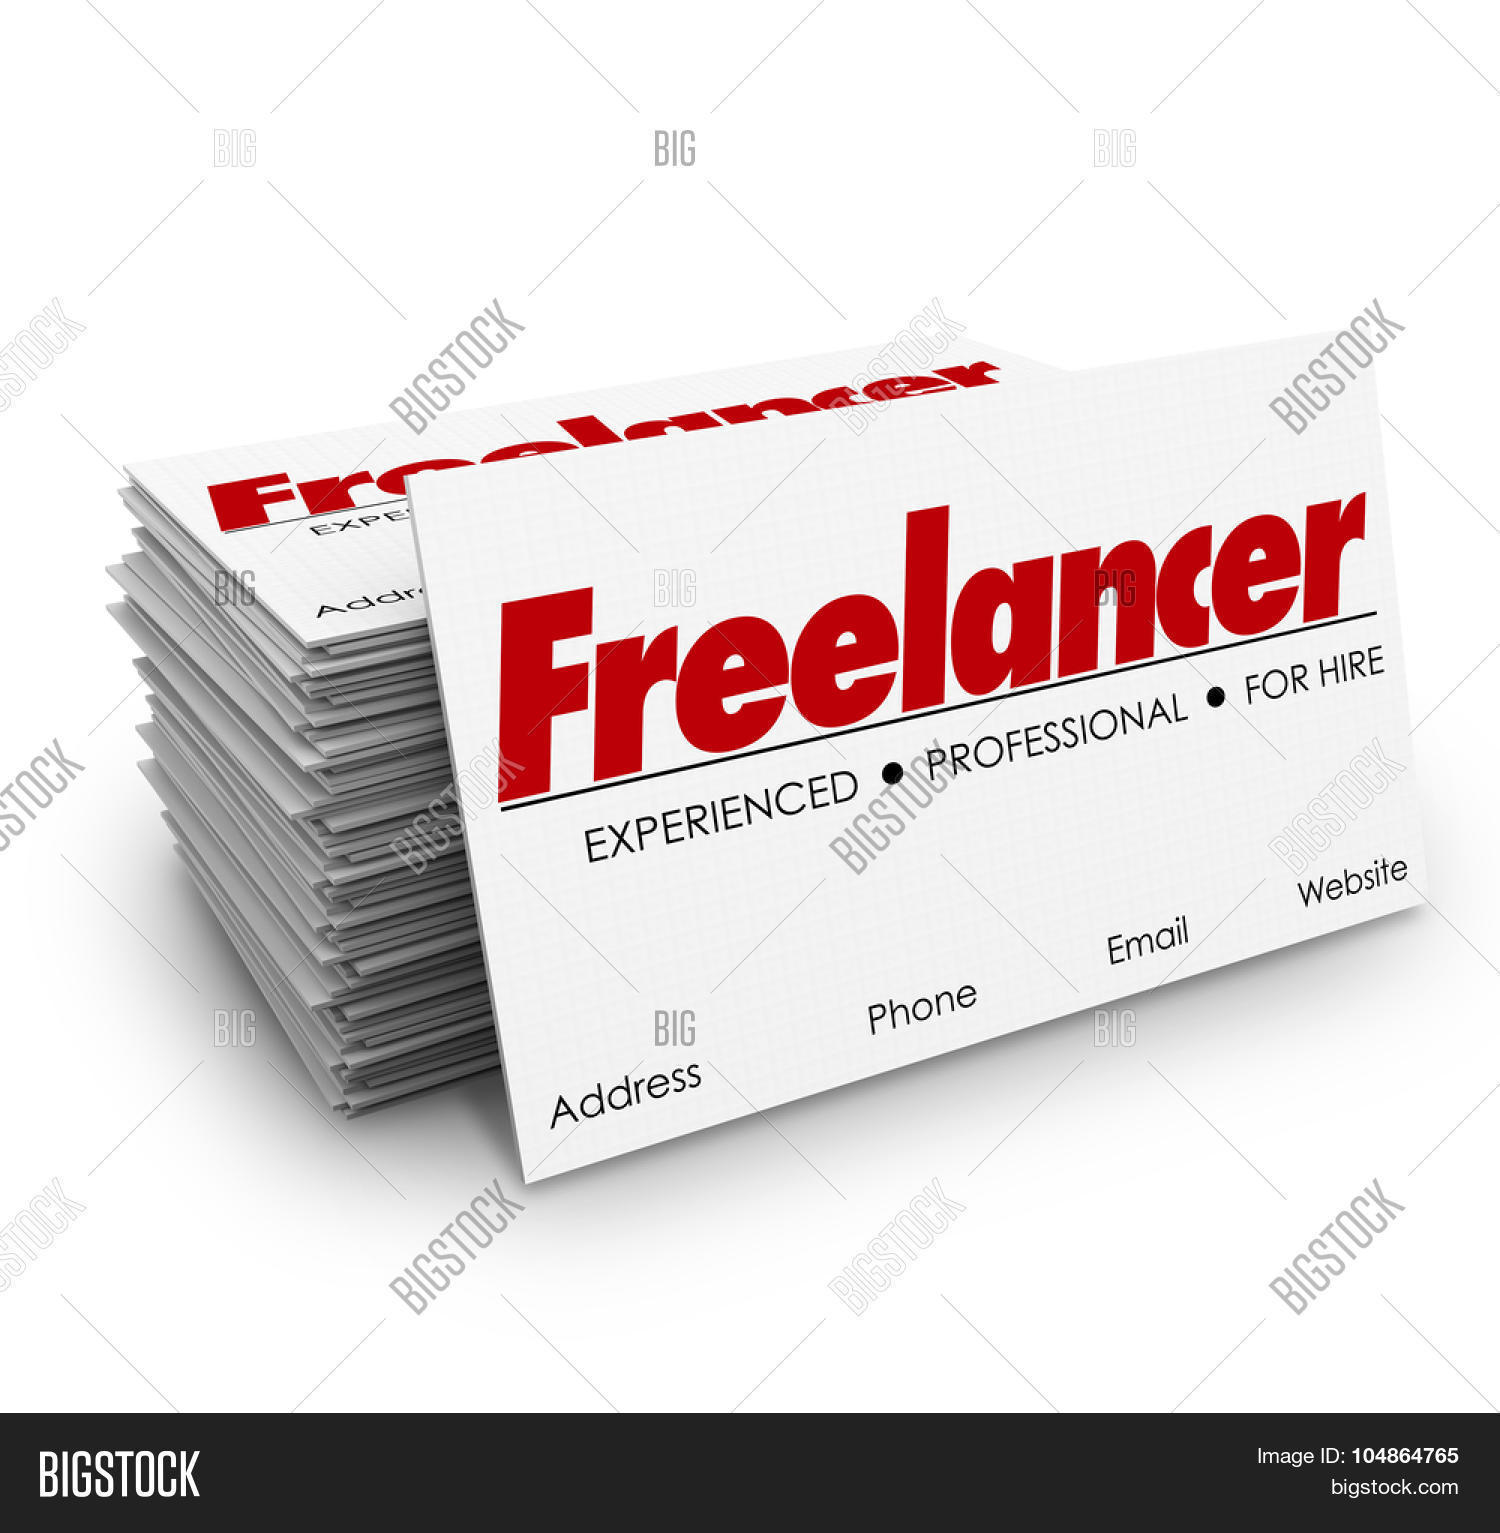 freelancer independent contractor image photo